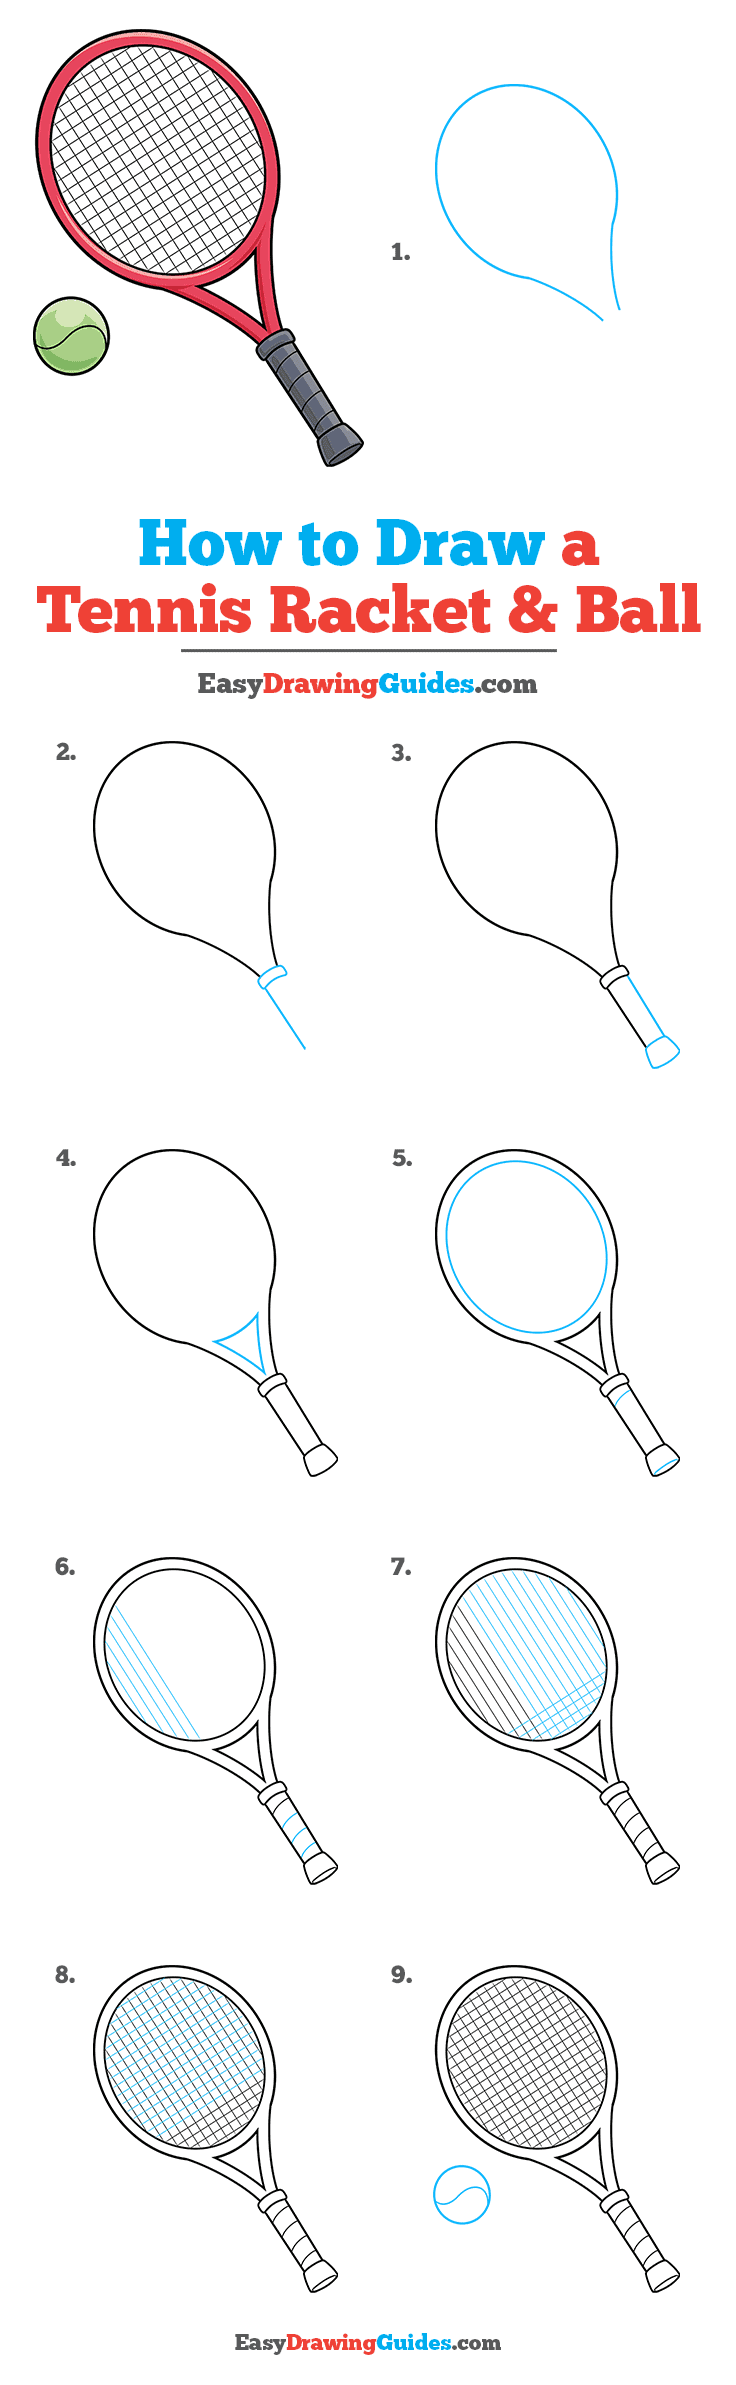 How to Draw Tennis Racket and Ball